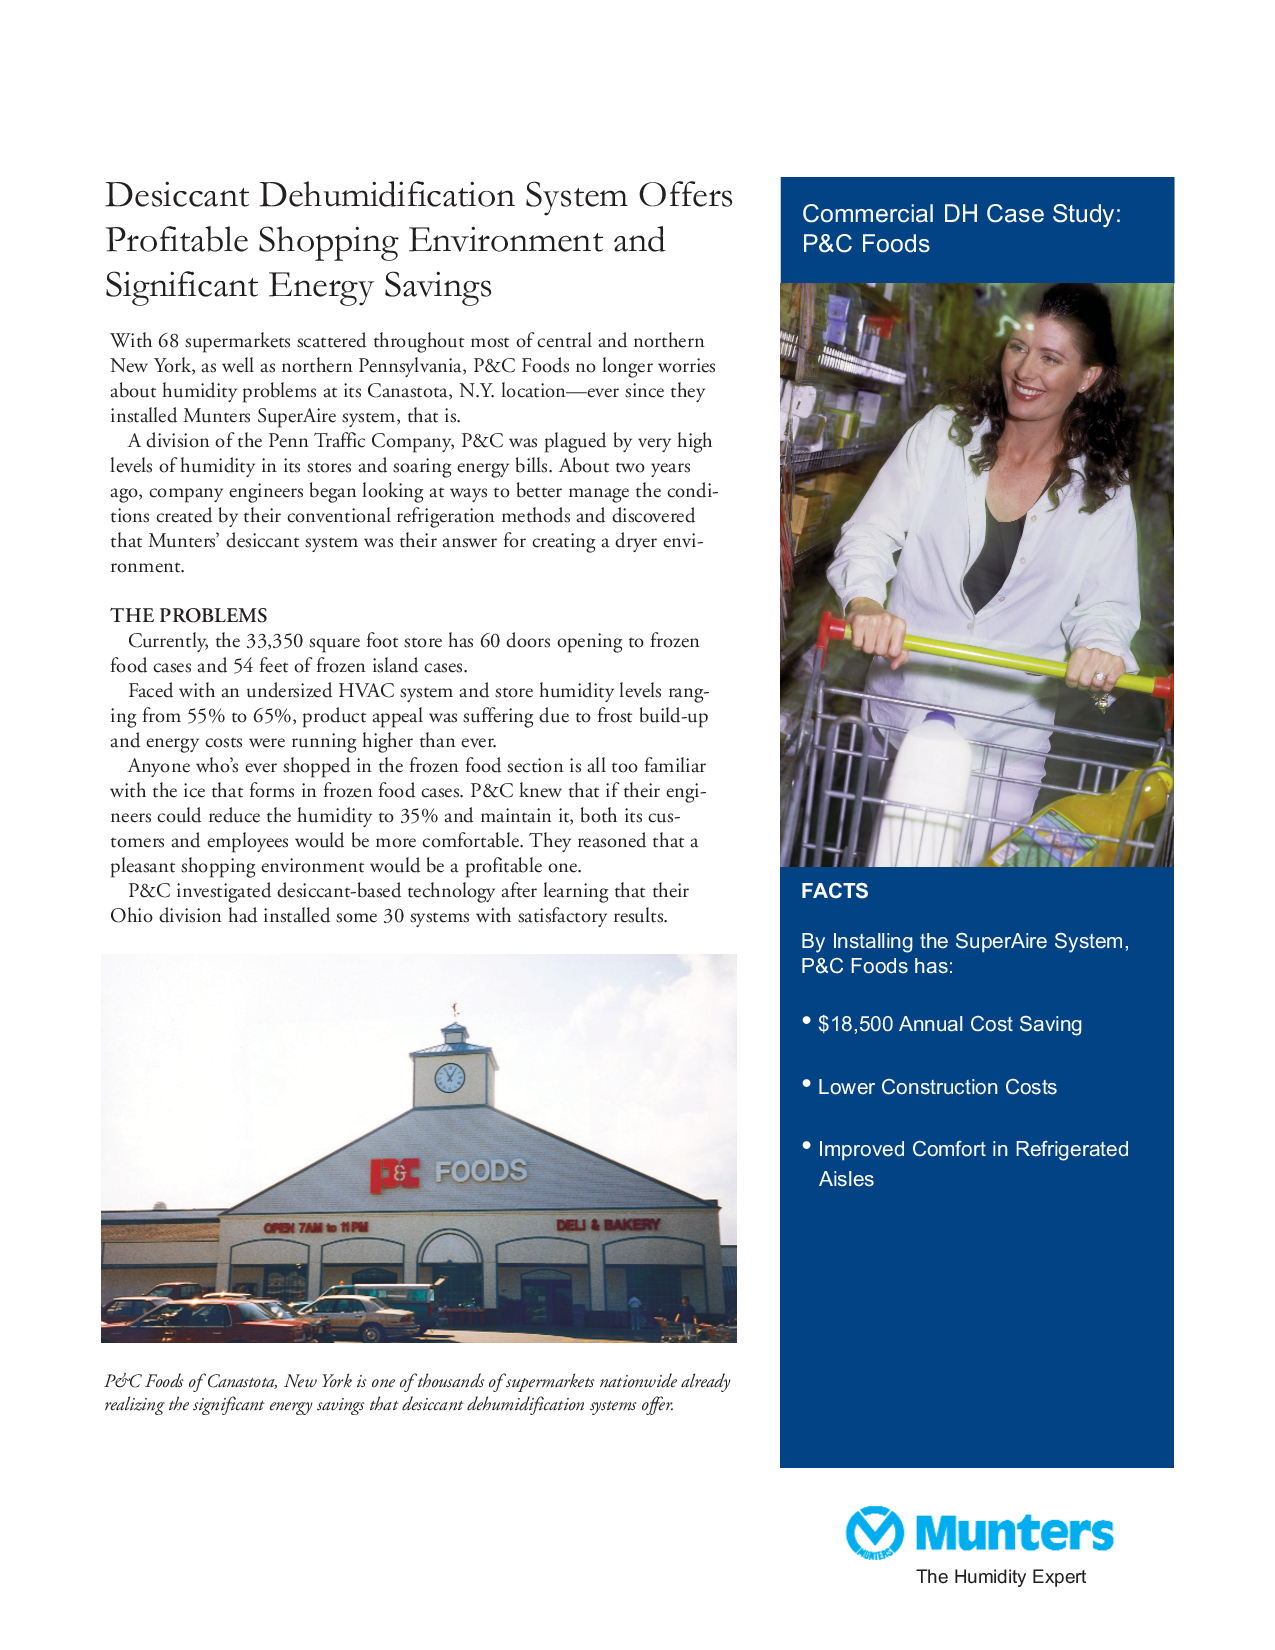 Desiccant Dehumidification System Offers Profitable Shopping Environment and Significant Energy Savings